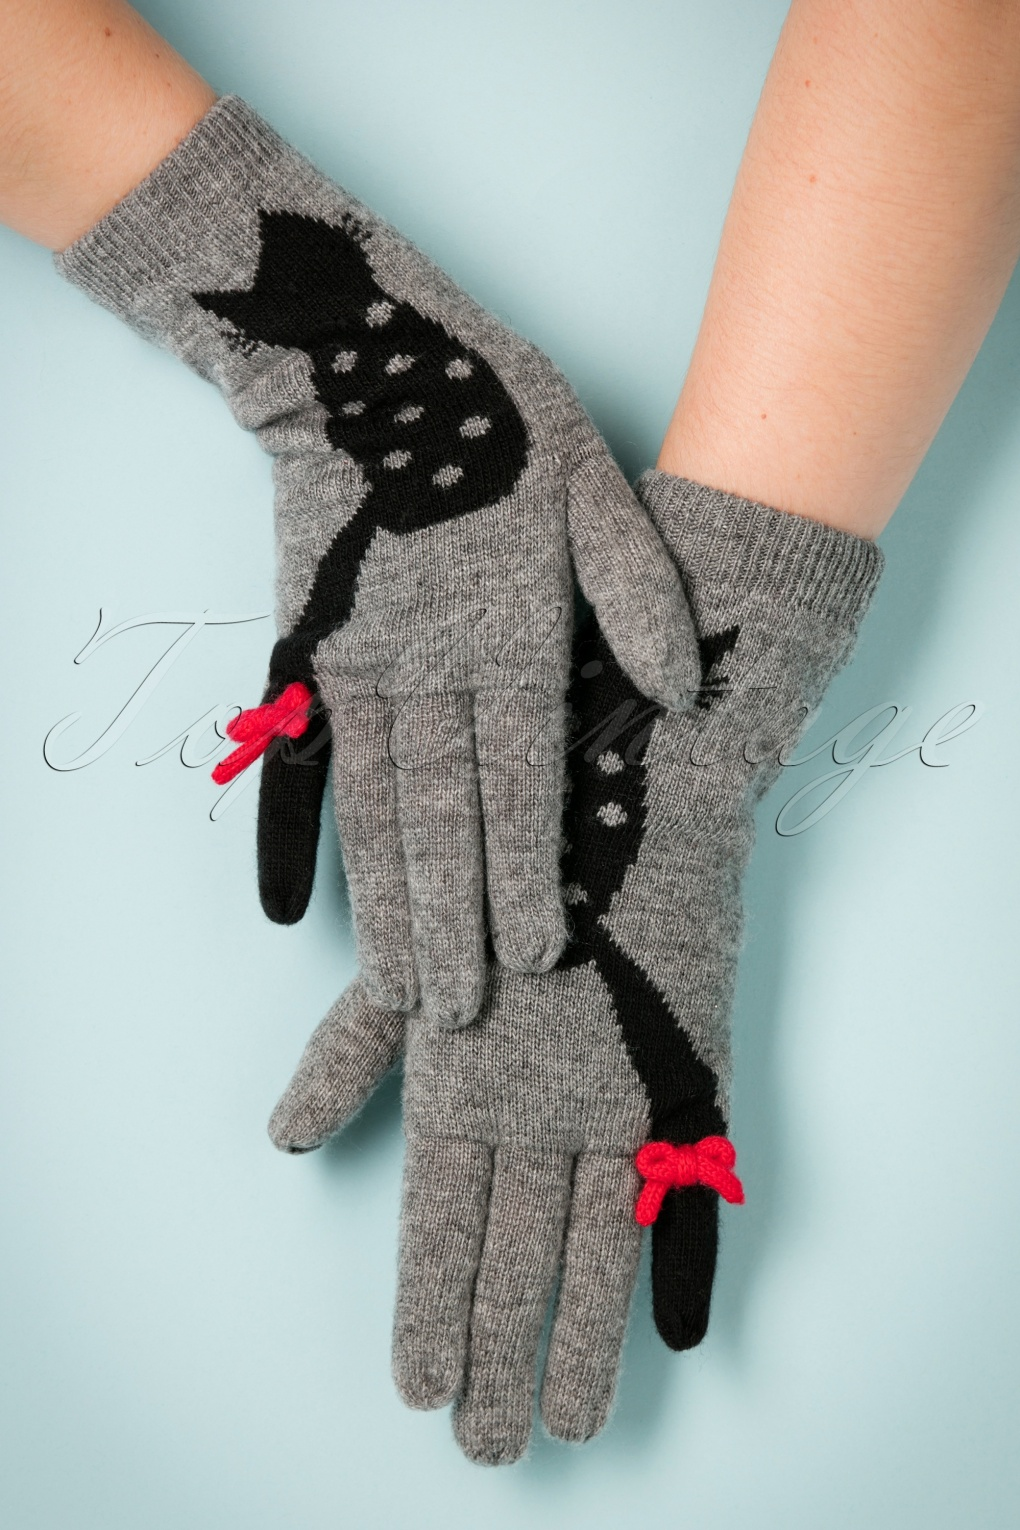 Vintage Style Gloves- Long, Wrist, Evening, Day, Leather, Lace 60s Love Cats Jaquard Gloves in Grey £21.81 AT vintagedancer.com